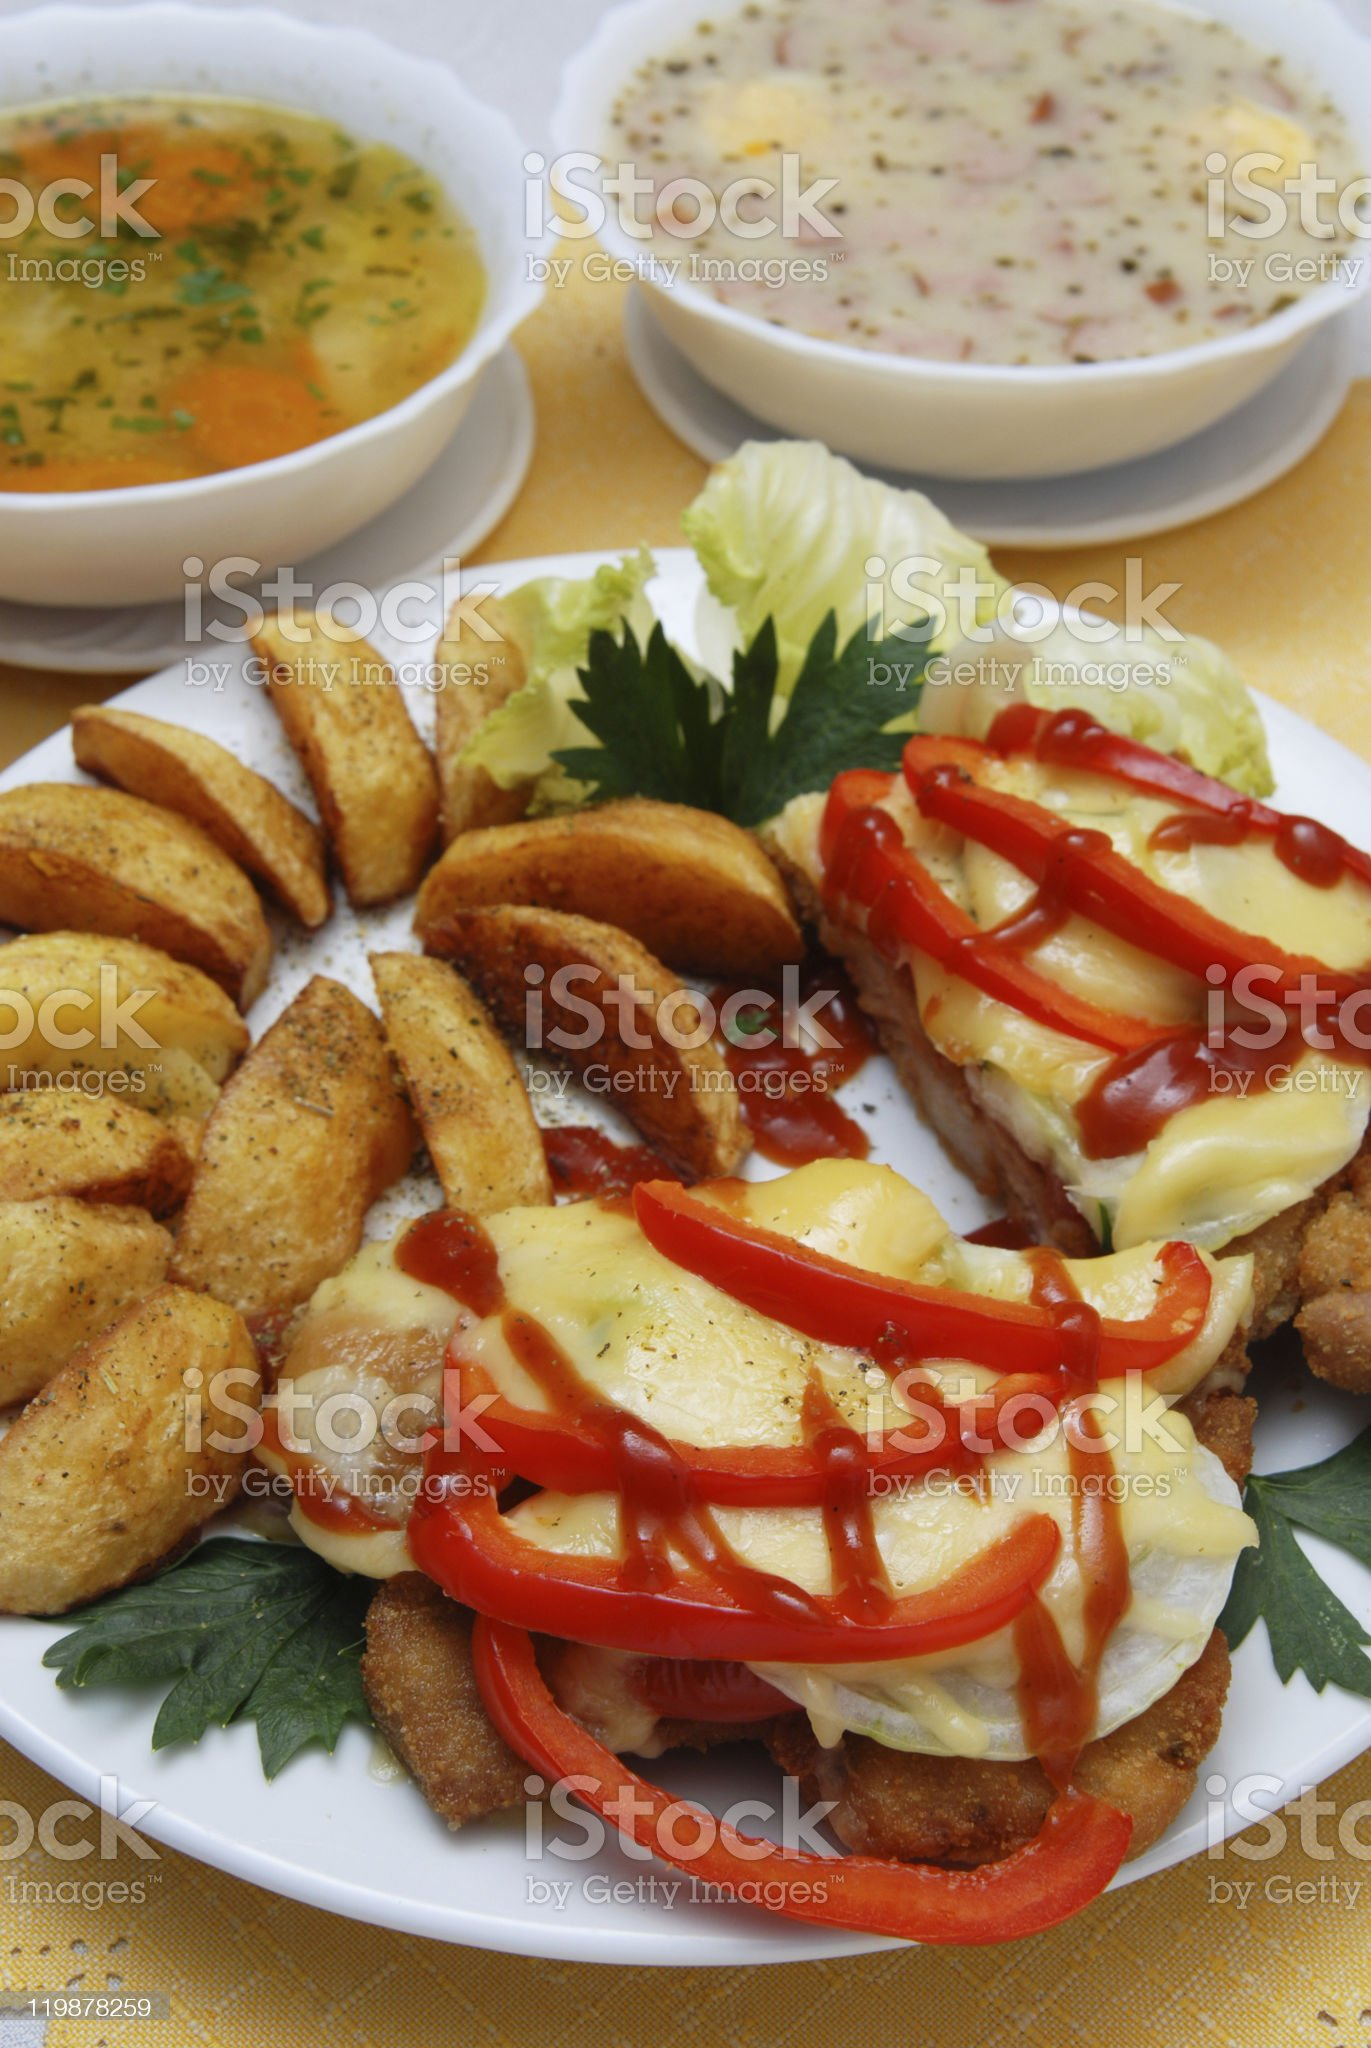 pork chop with cheese and roasted potatoes royalty-free stock photo